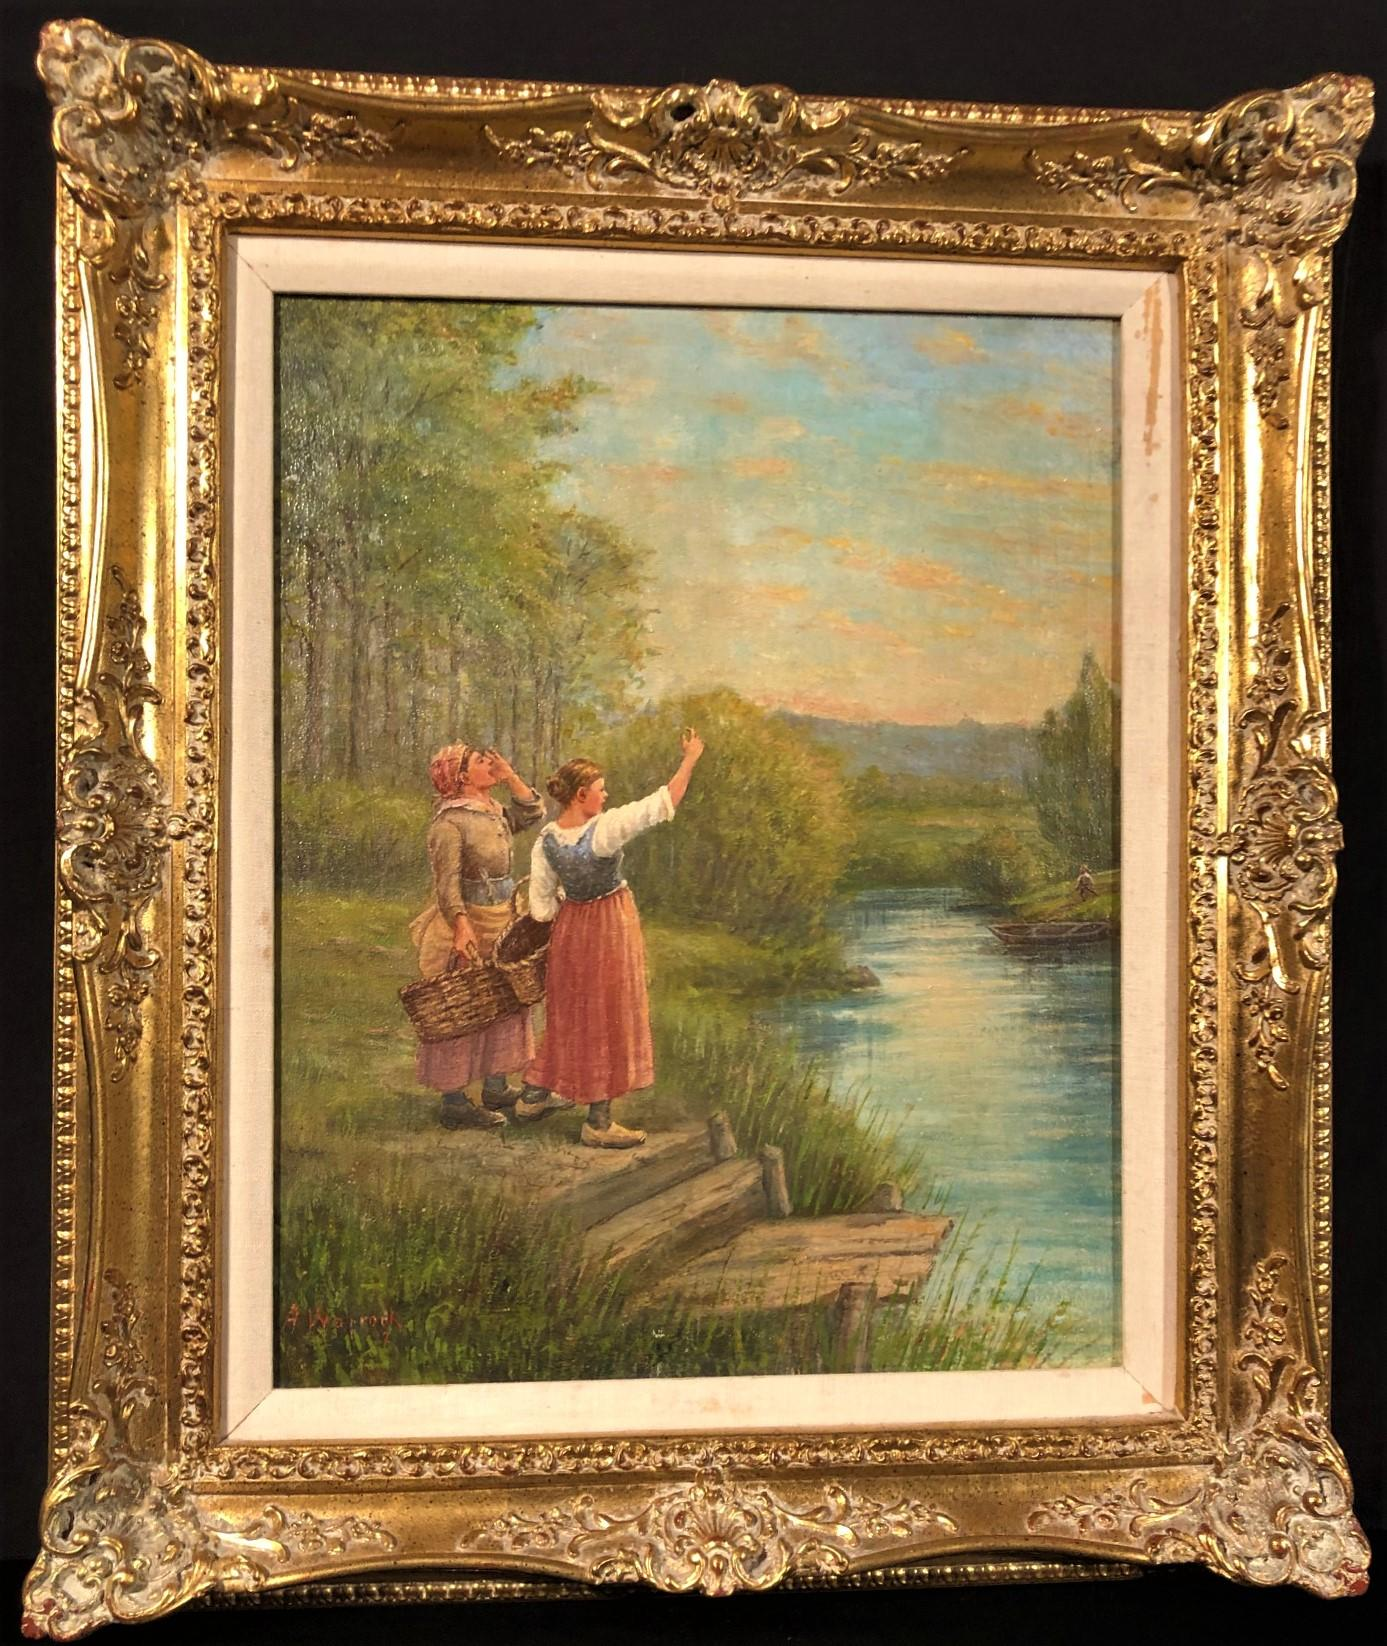 A. WARROCK ORIGINAL OIL ON CANVAS OF 2 LADIES BY A LAKE MEASURING 23 IN x 27 IN